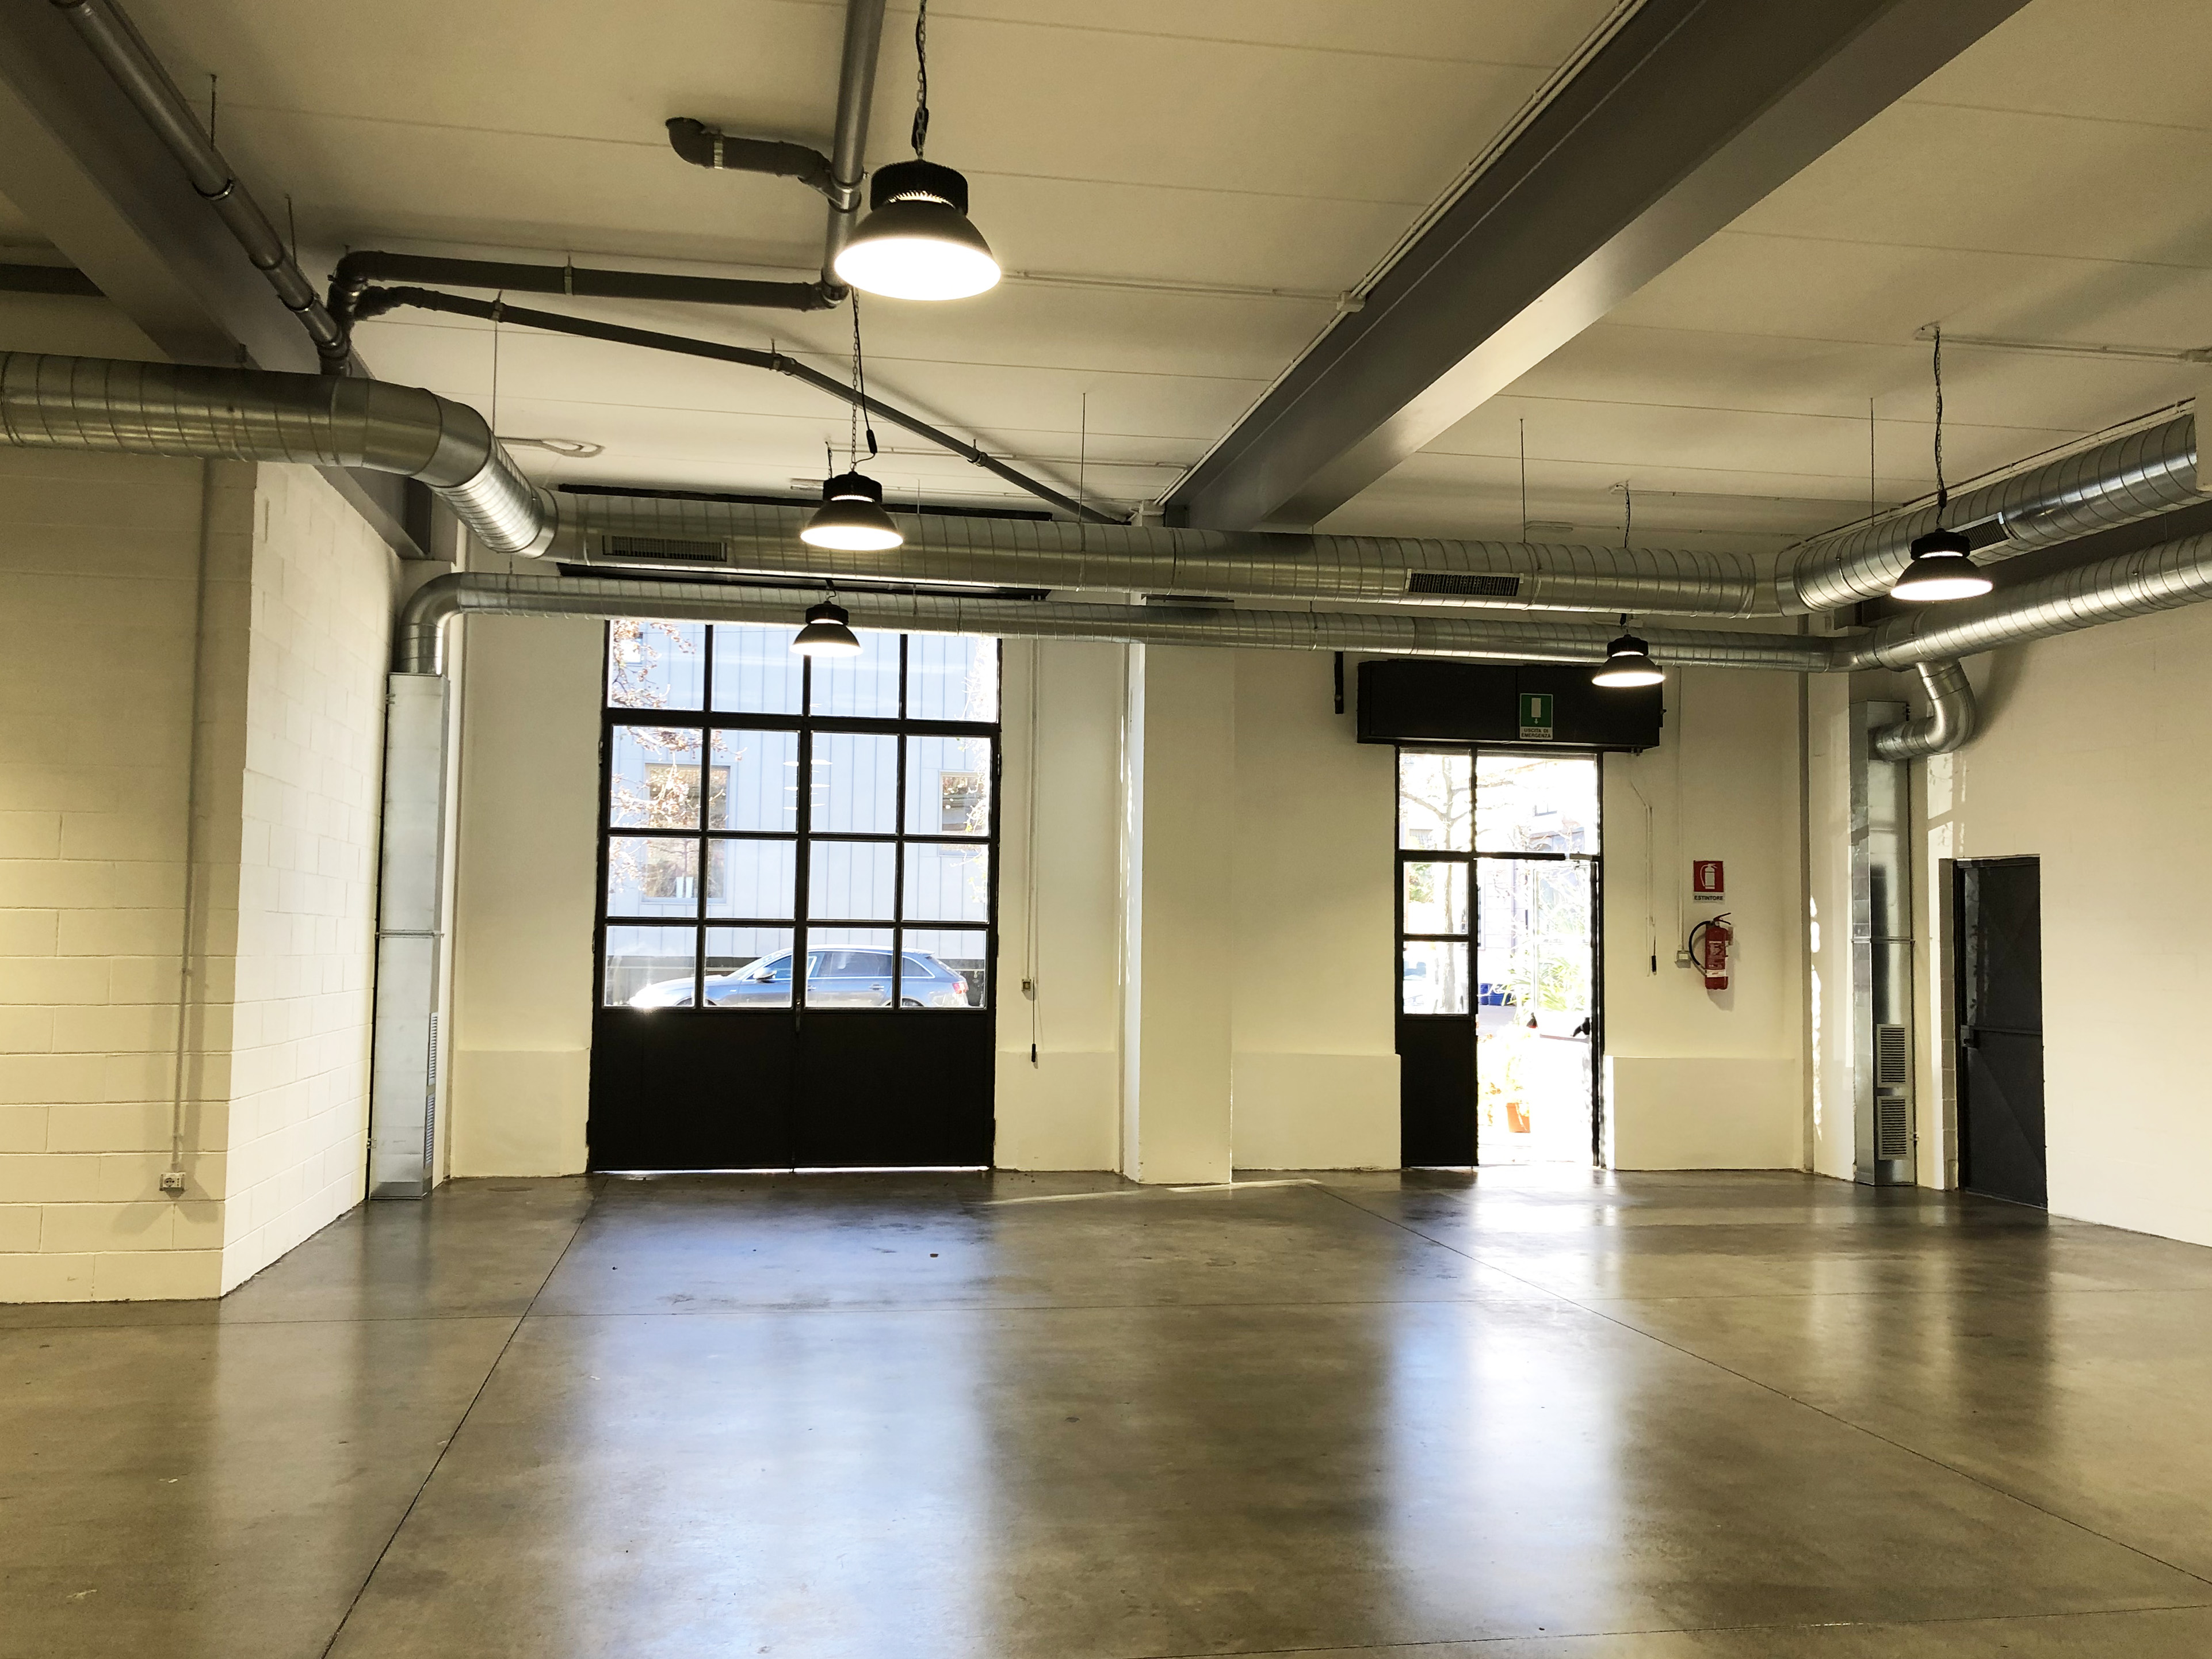 Officina3 - Open space, Spazio industriale di 200mq in Via Tortona 31  | location disallestita 3